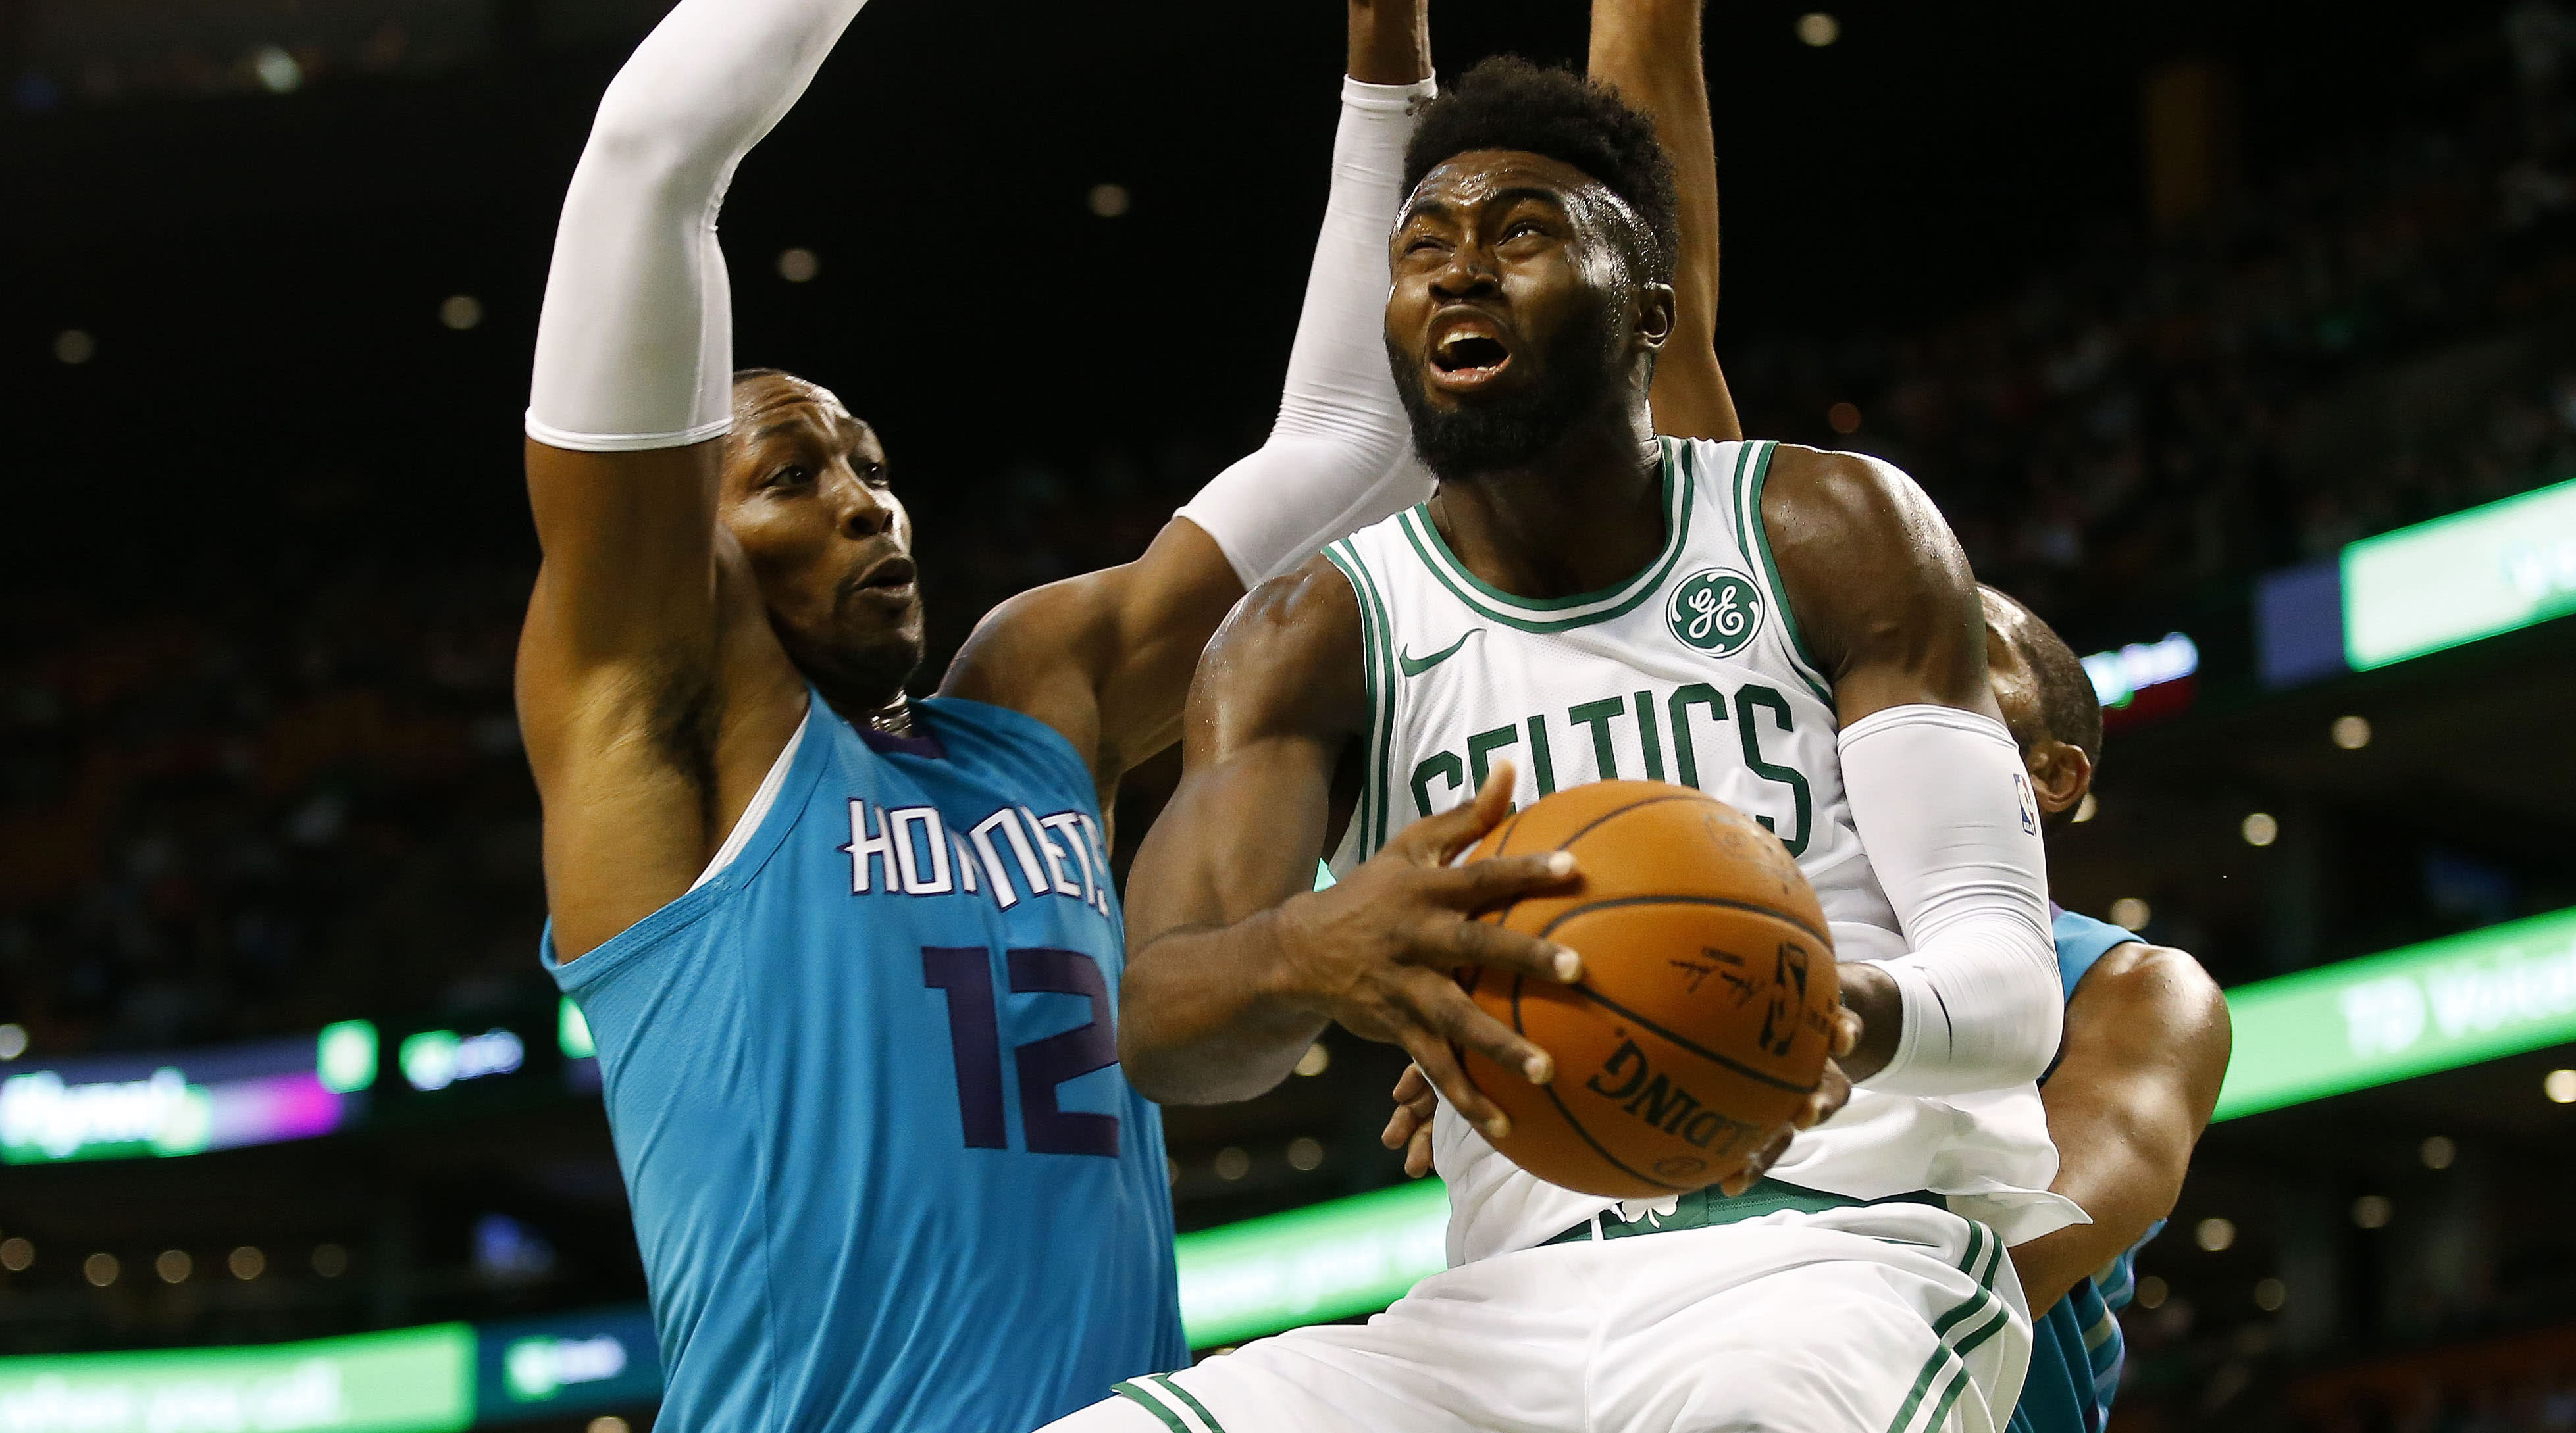 Boston Celtics to play Charlotte Hornets in preseason game at Chapel Hill